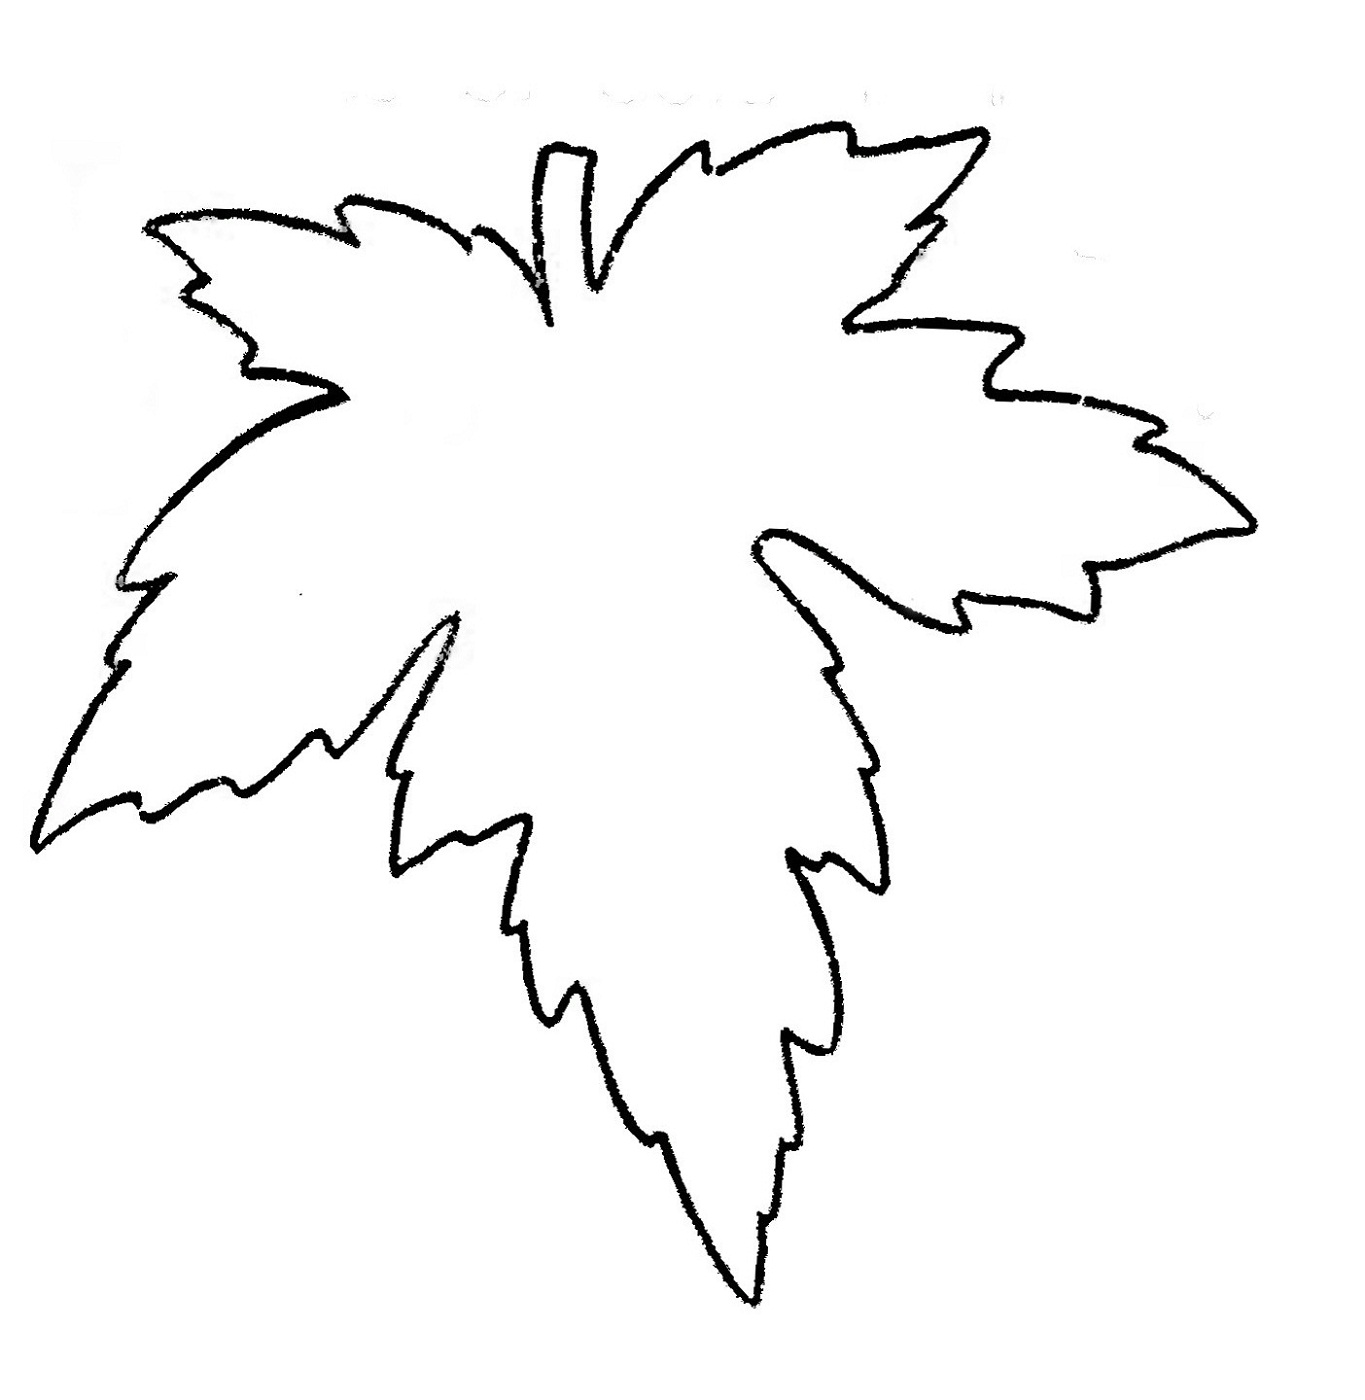 Leaf Coloring Pages for Preschool | Activity Shelter